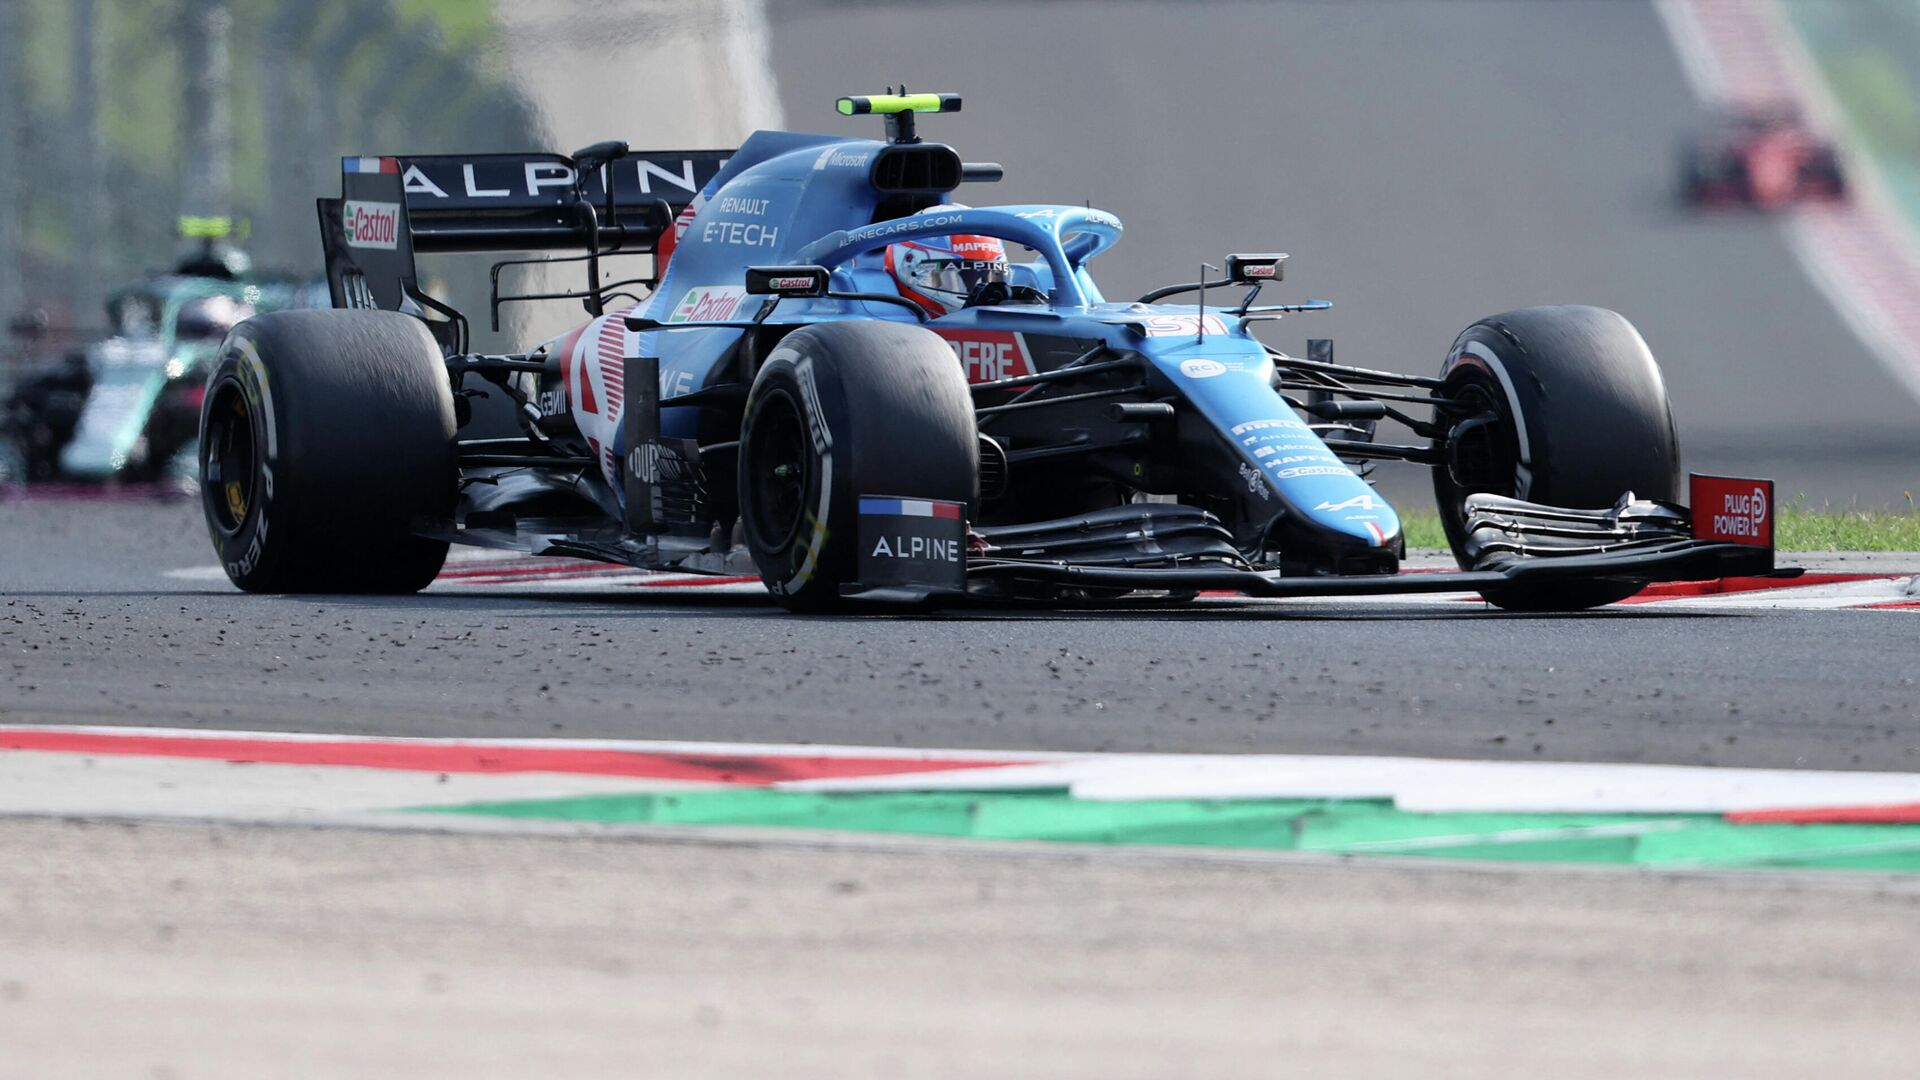 Alpine's French driver Esteban Ocon competes to win the Formula One Hungarian Grand Prix at the Hungaroring race track in Mogyorod near Budapest on August 1, 2021. (Photo by FERENC ISZA / AFP) - РИА Новости, 1920, 01.08.2021